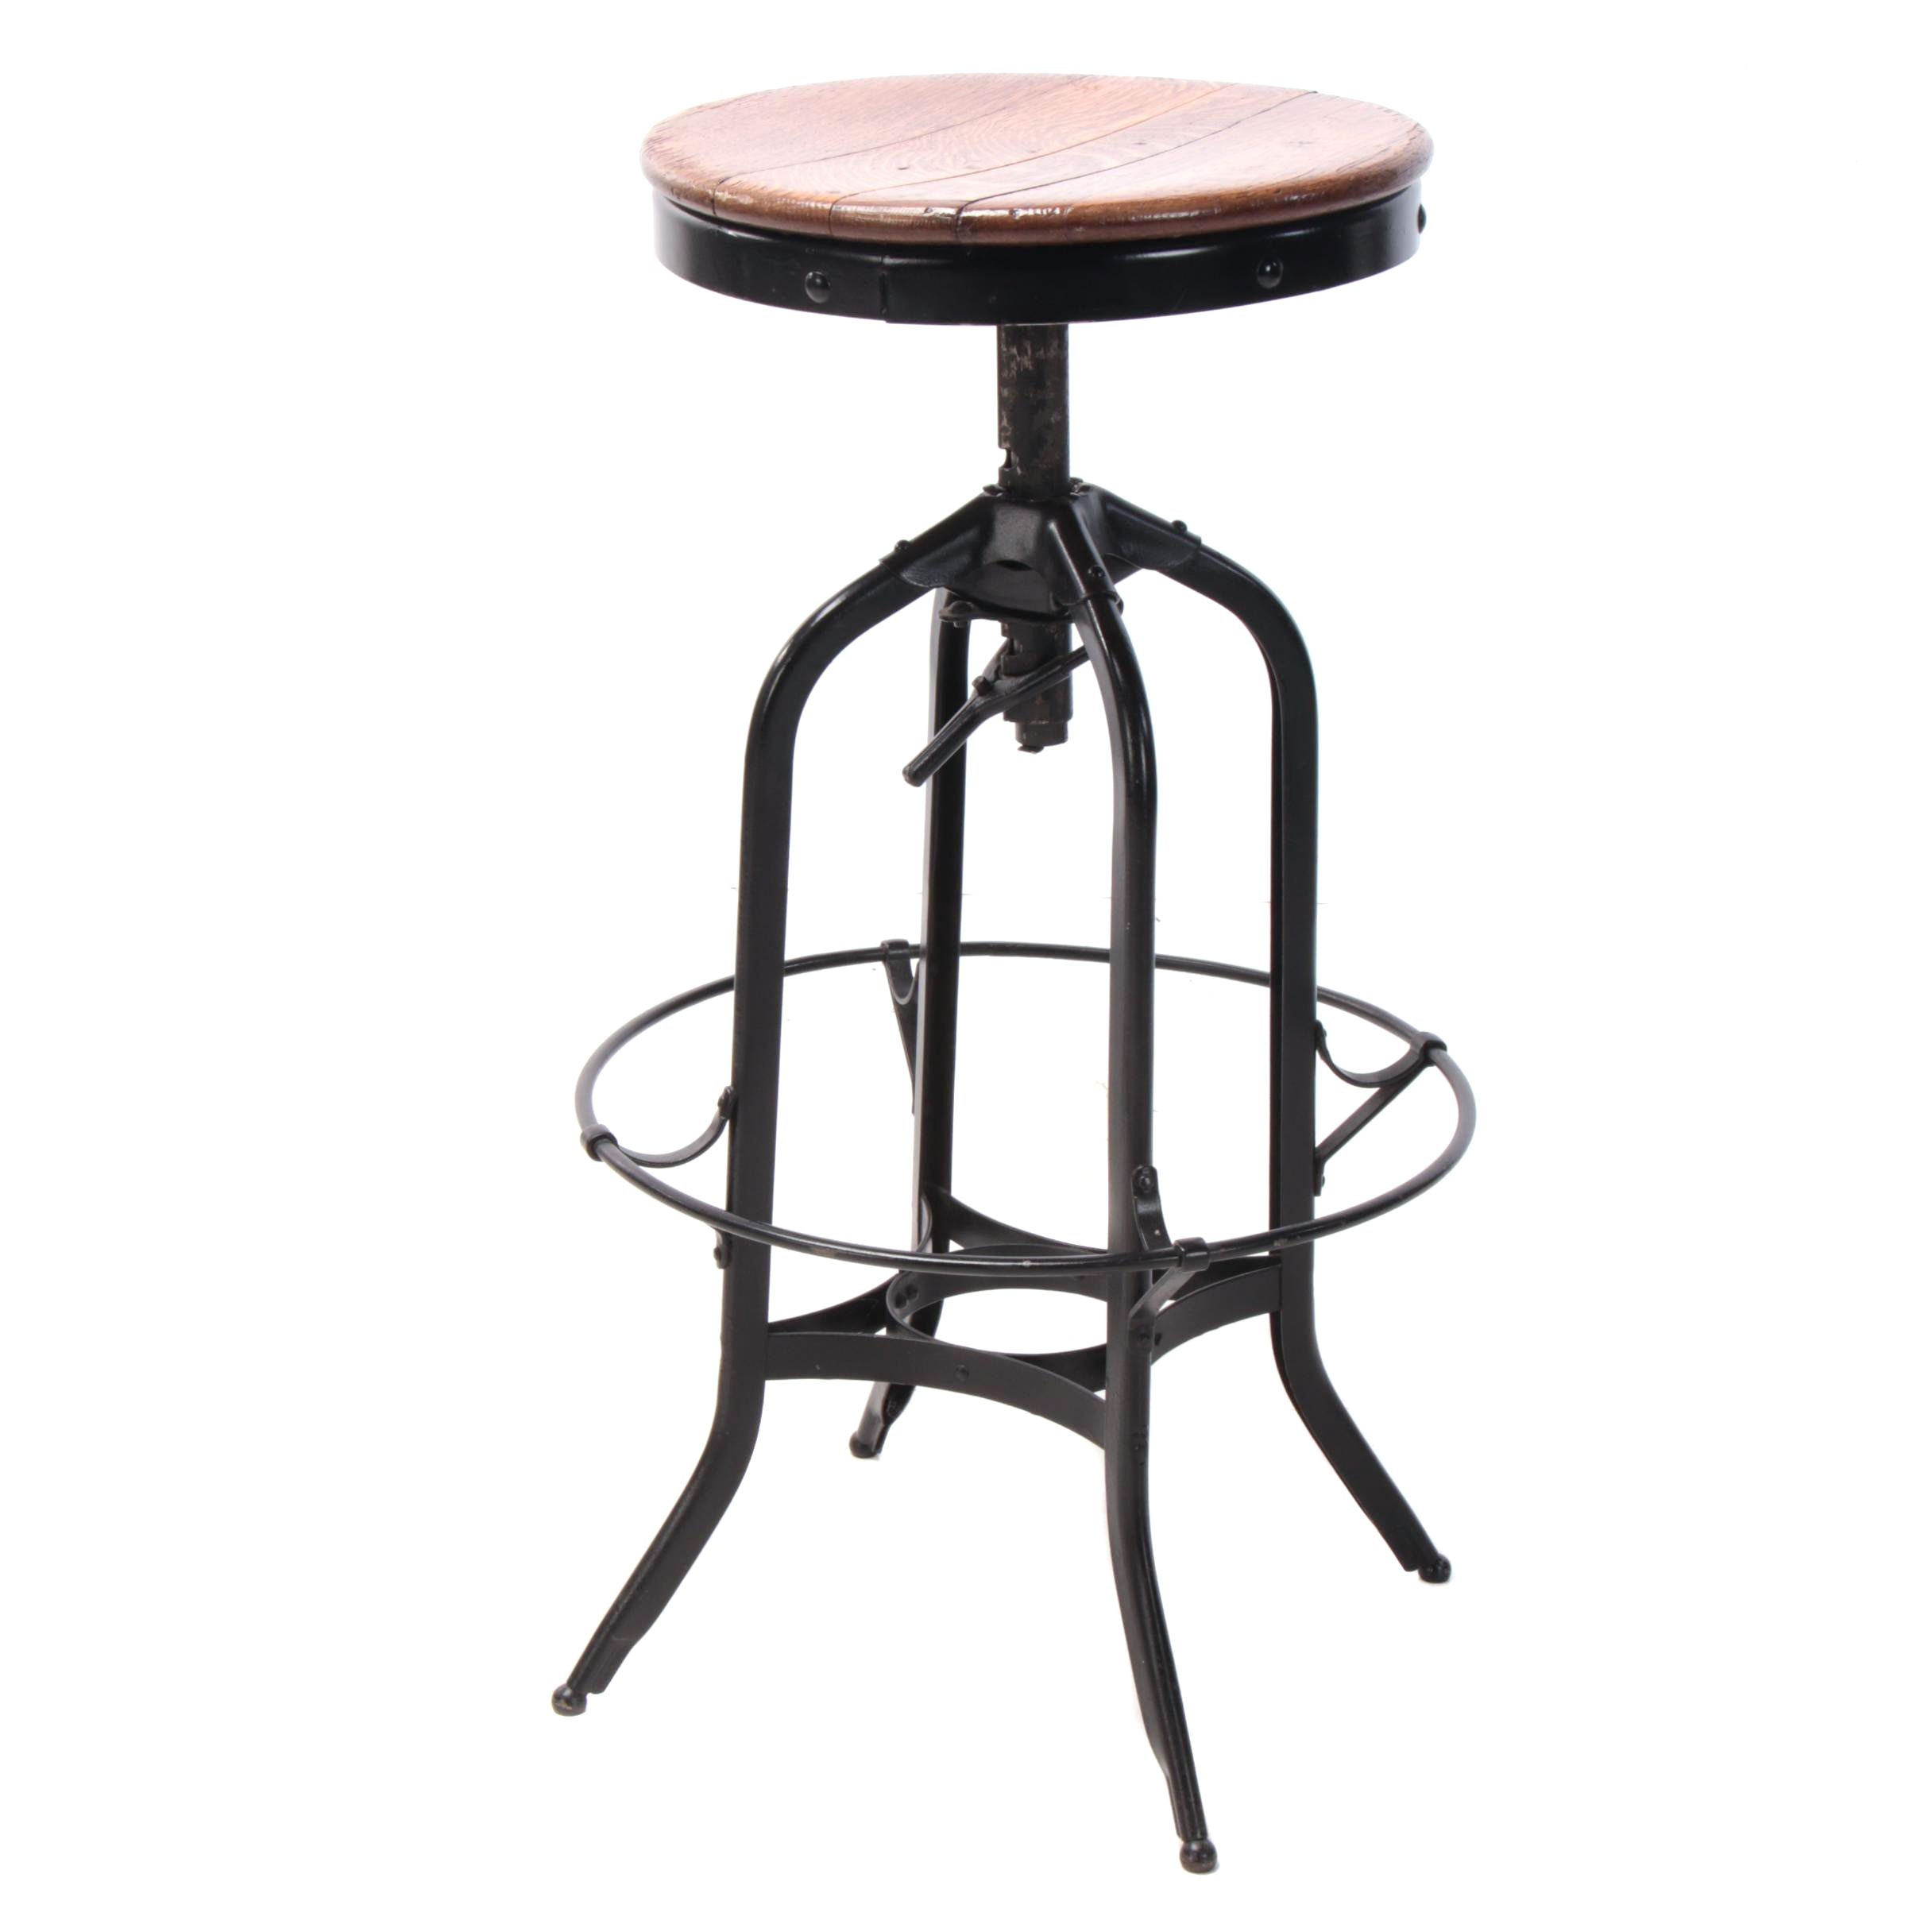 Industrial Black-Painted Steel & Oak Stool, Possibly by Toledo, Mid 20th Century